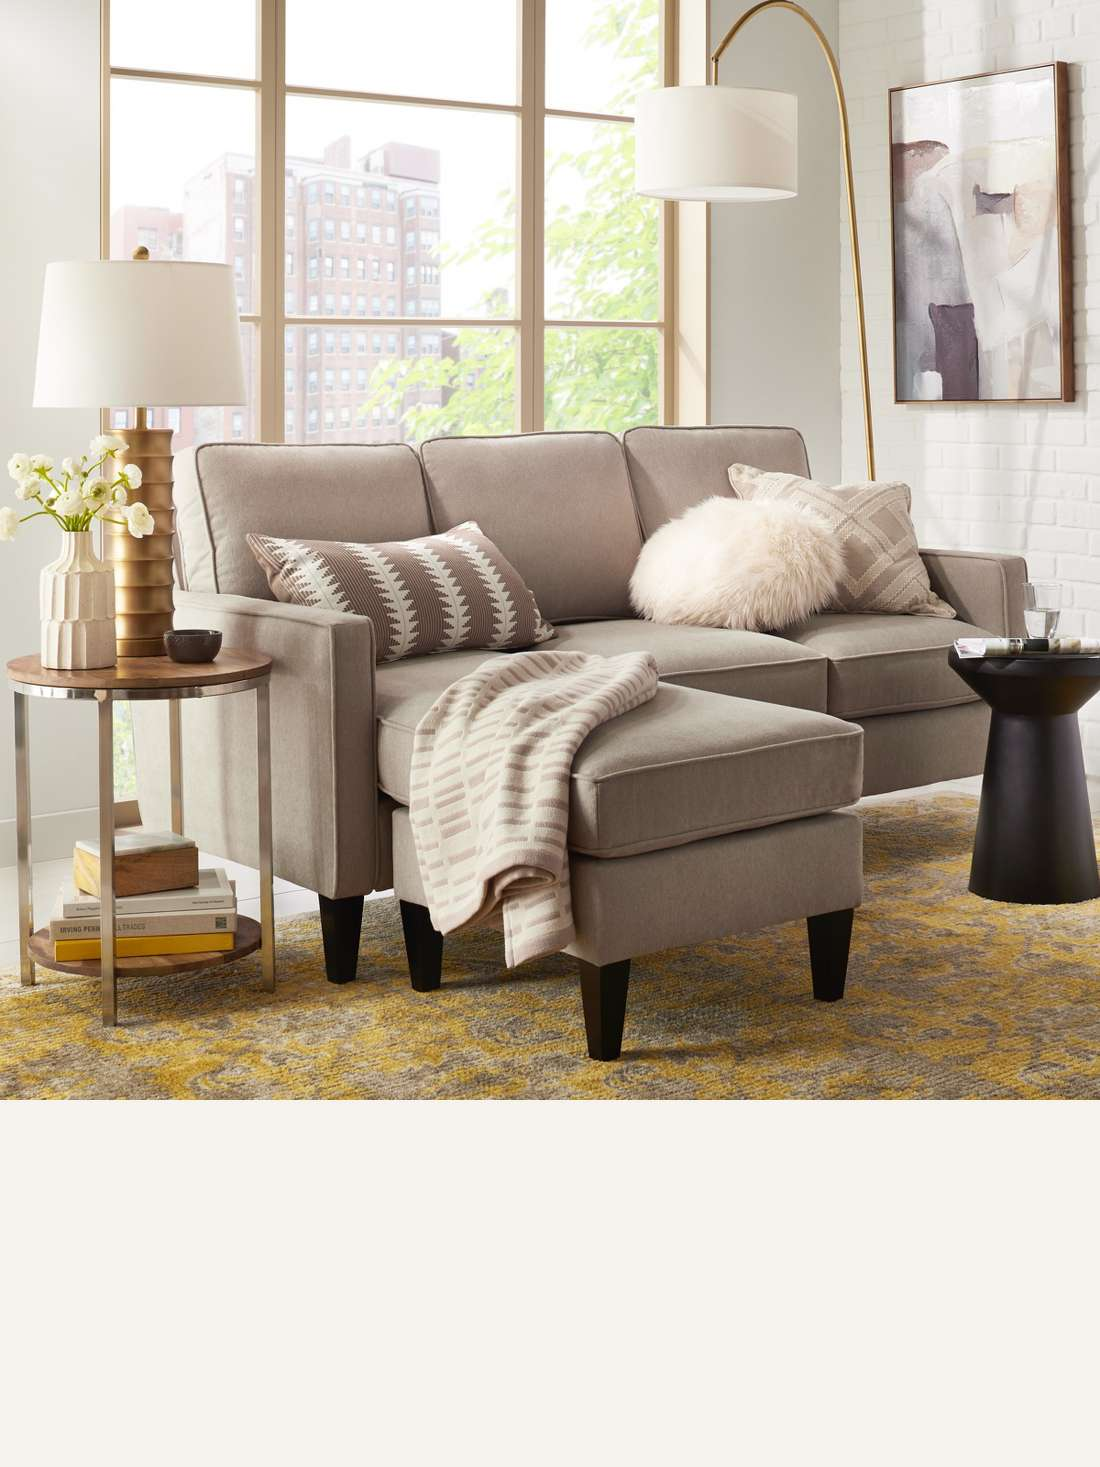 Sectional Smaller Sectionals Offer Lots Of Comfy Seating For Small Es While Larger Ones Are Best Open Floor Plans Browse Sleeper Sofa